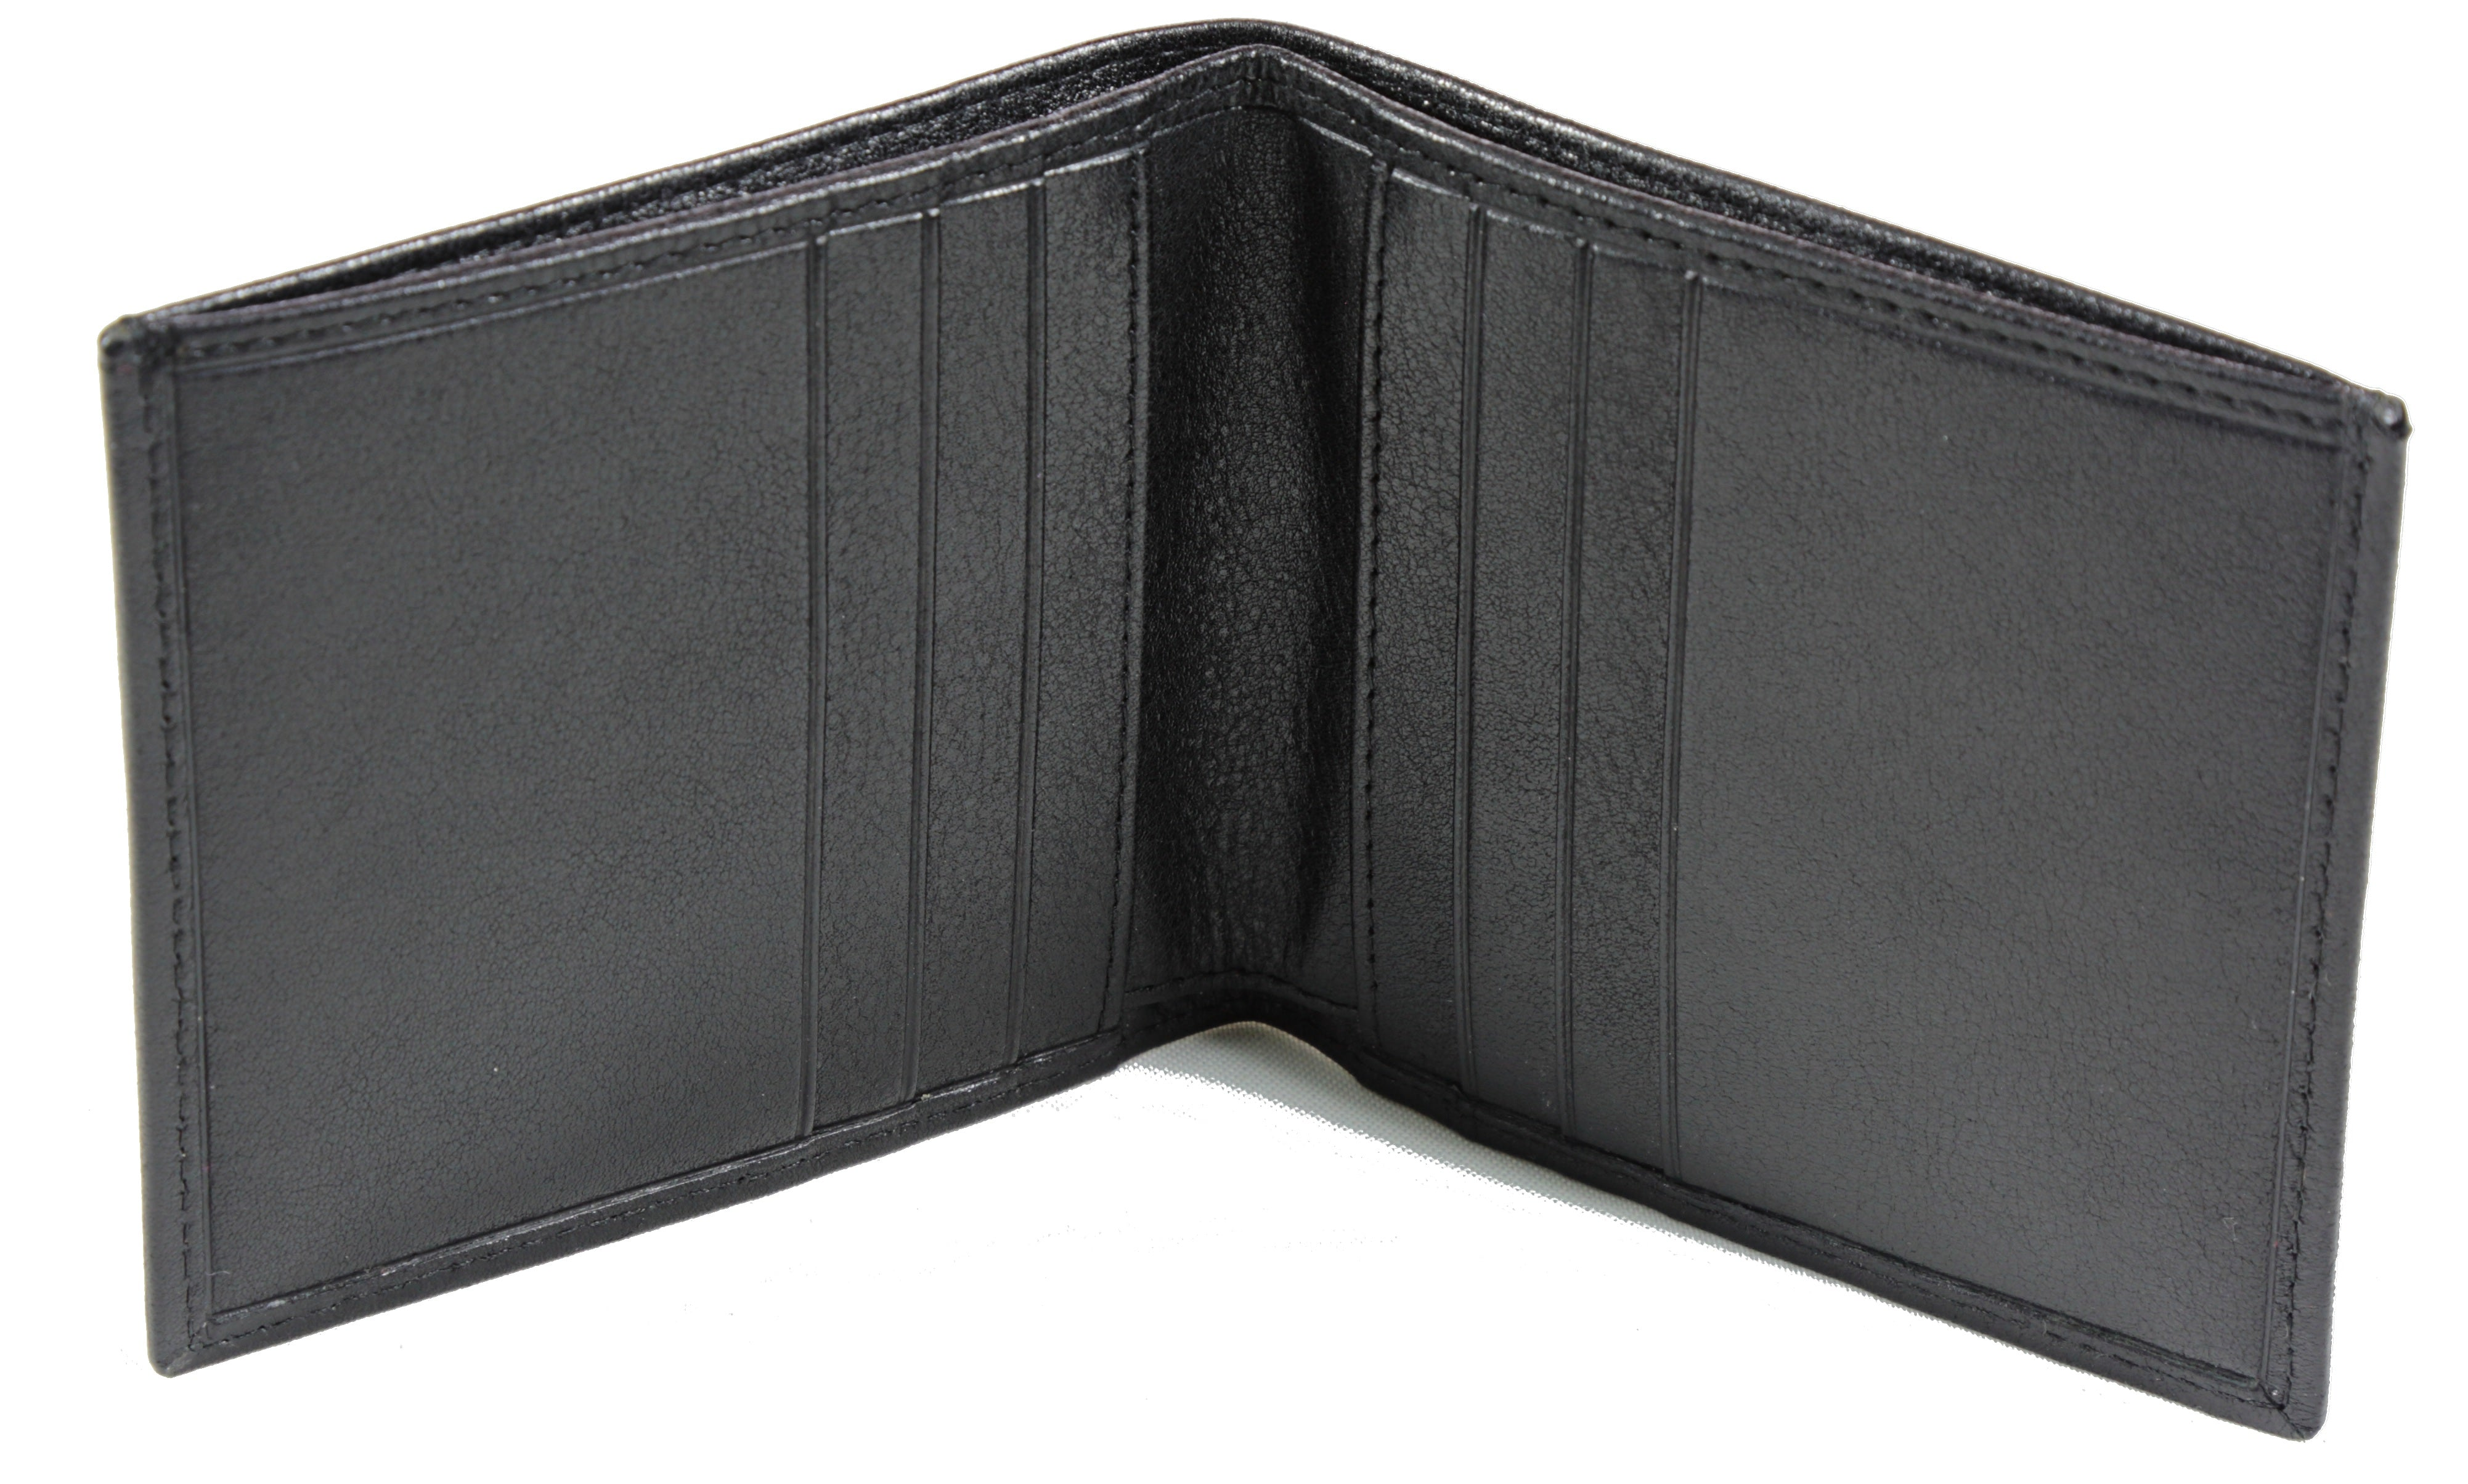 veg tanned leather wallet